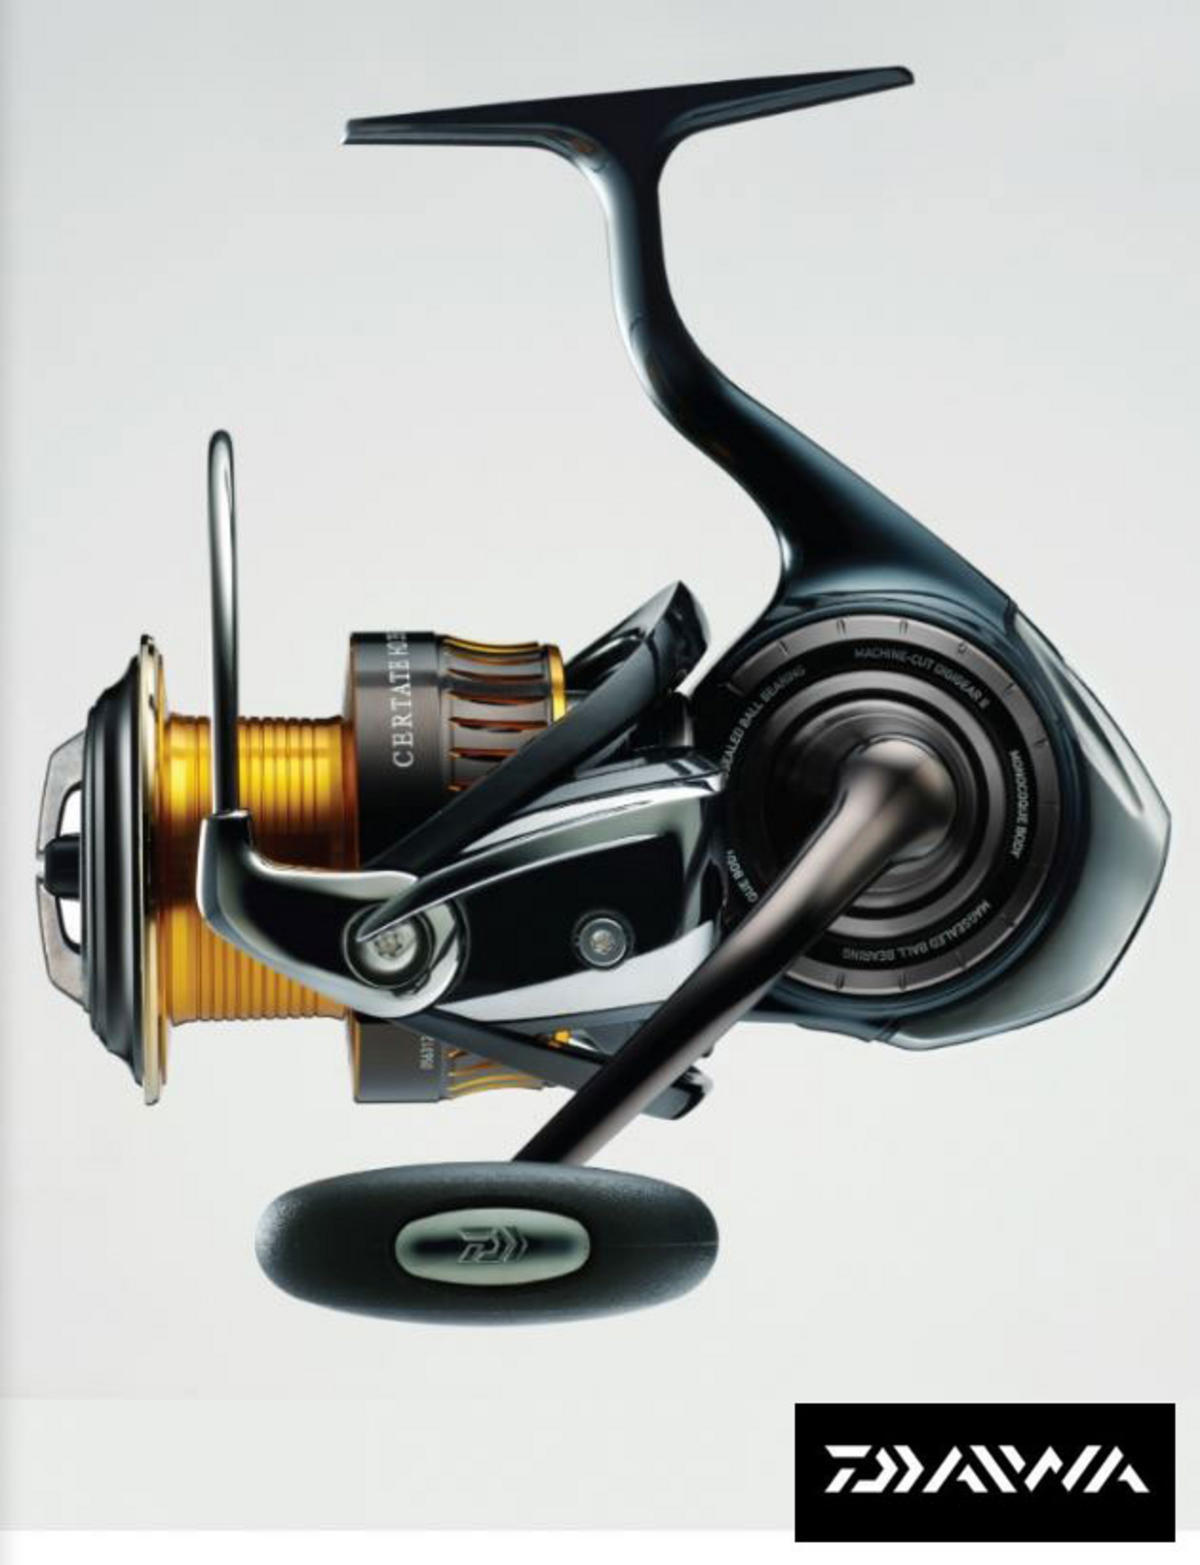 New Daiwa 16 Certate HD 3500H Spinning Reel Model No. 16 CERTATE HD 3500H